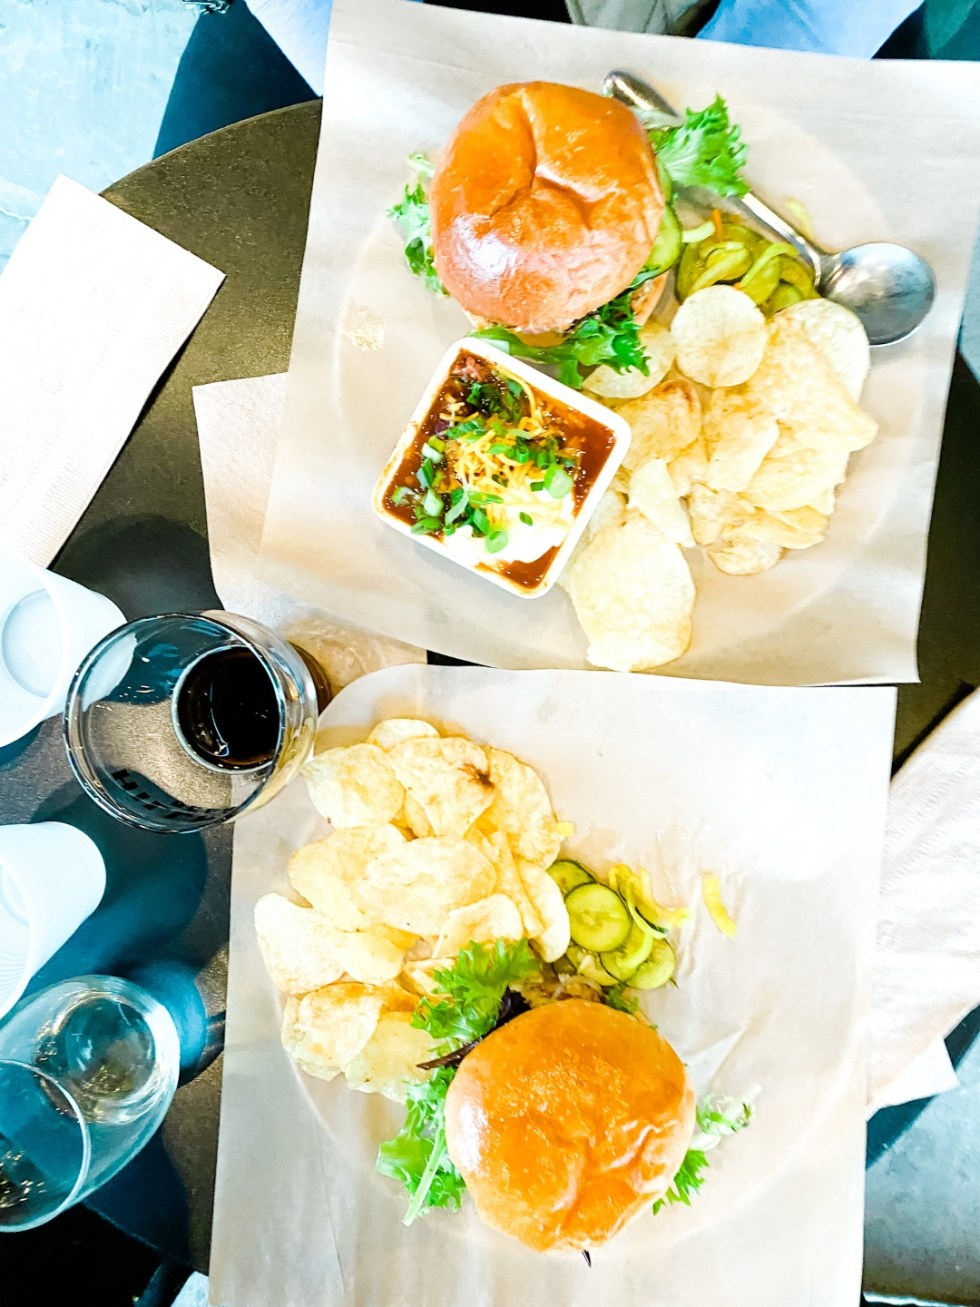 Christmas in Asheville: a Weekend Getaway During the Holidays - I'm Fixin' To - @imfixintoblog |Christmas in Asheville NC by popular NC lifestyle blog, I'm Fixin' To: image of a plate of burgers and chips at Hillman Beer.